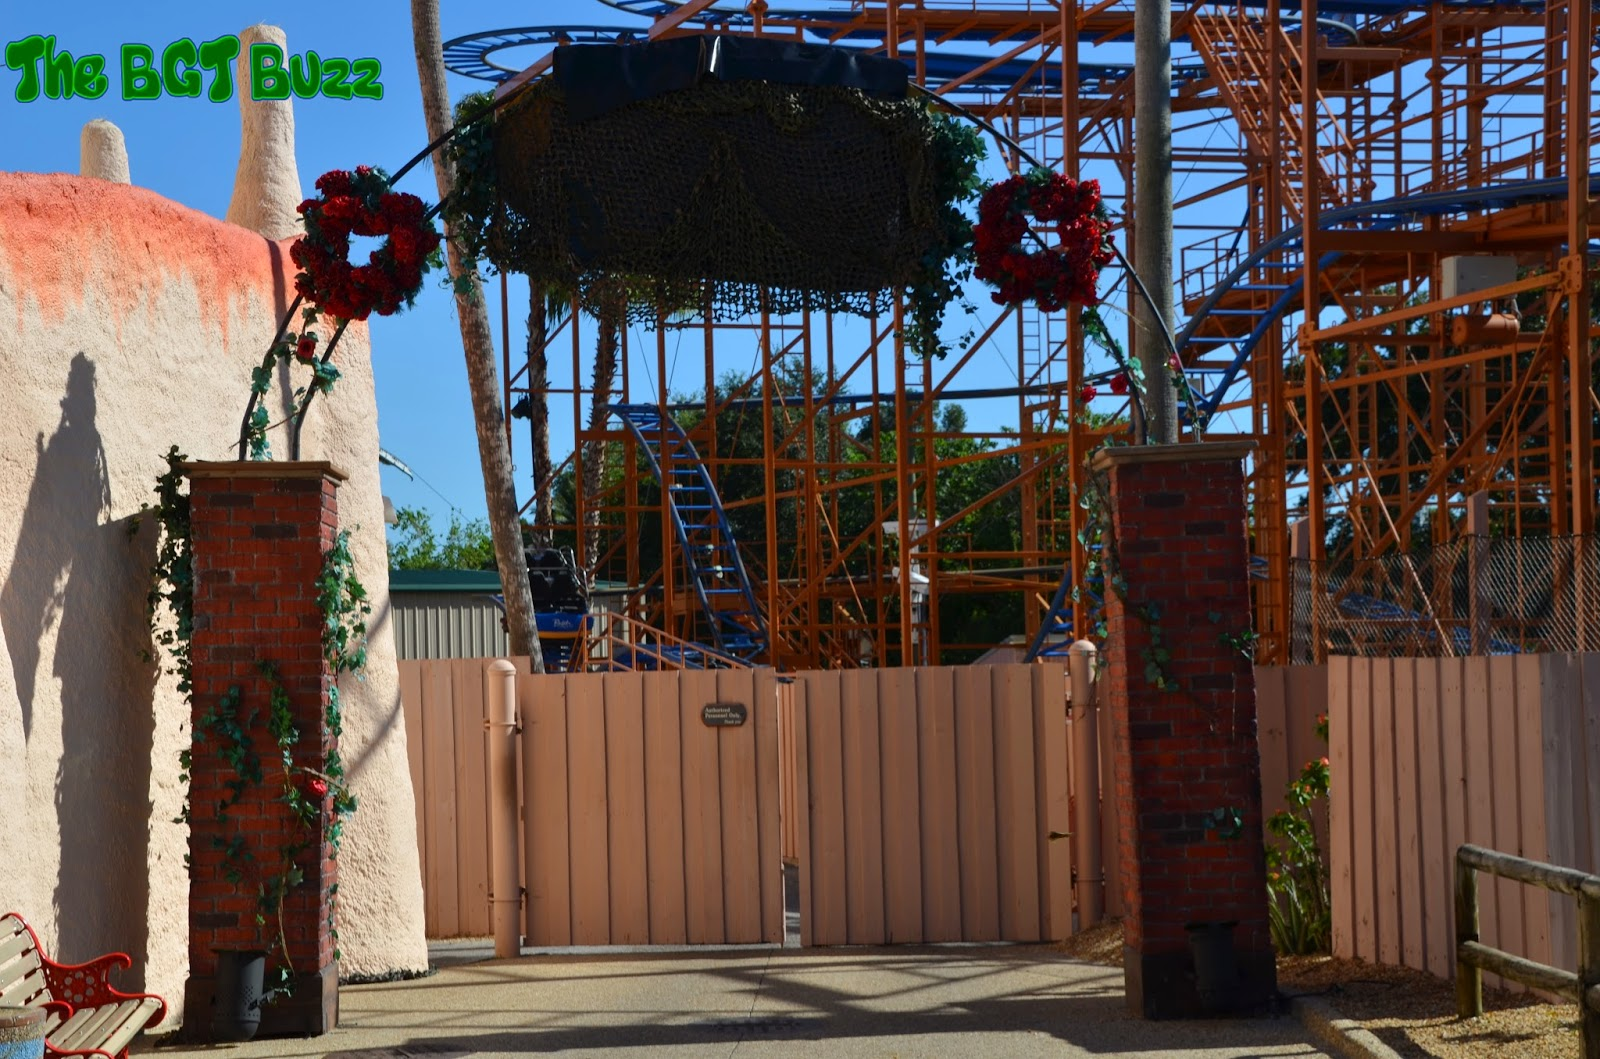 The Bgt Buzz Howl O Scream At Busch Gardens Tampa Construction Update 9 13 14